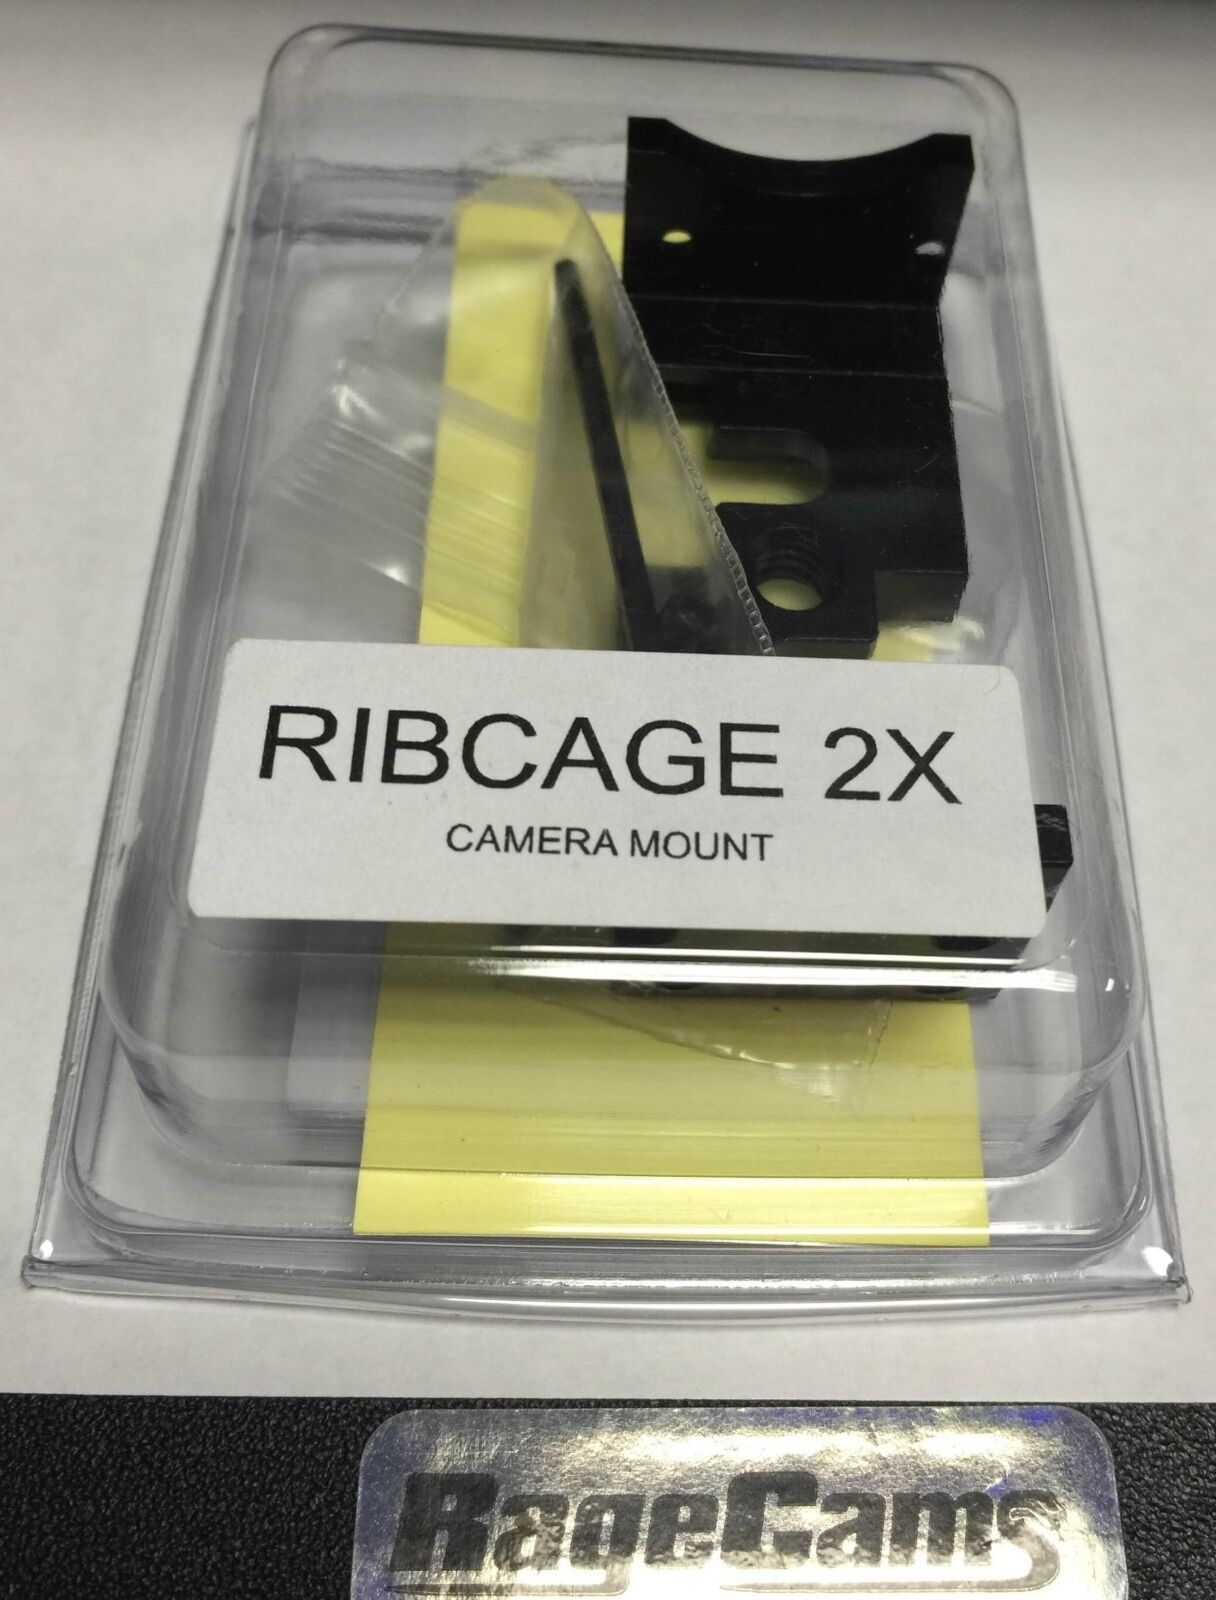 Ribcage Backbone 2x Mount Mod Kit For Gopro Hd Hero4 Came...